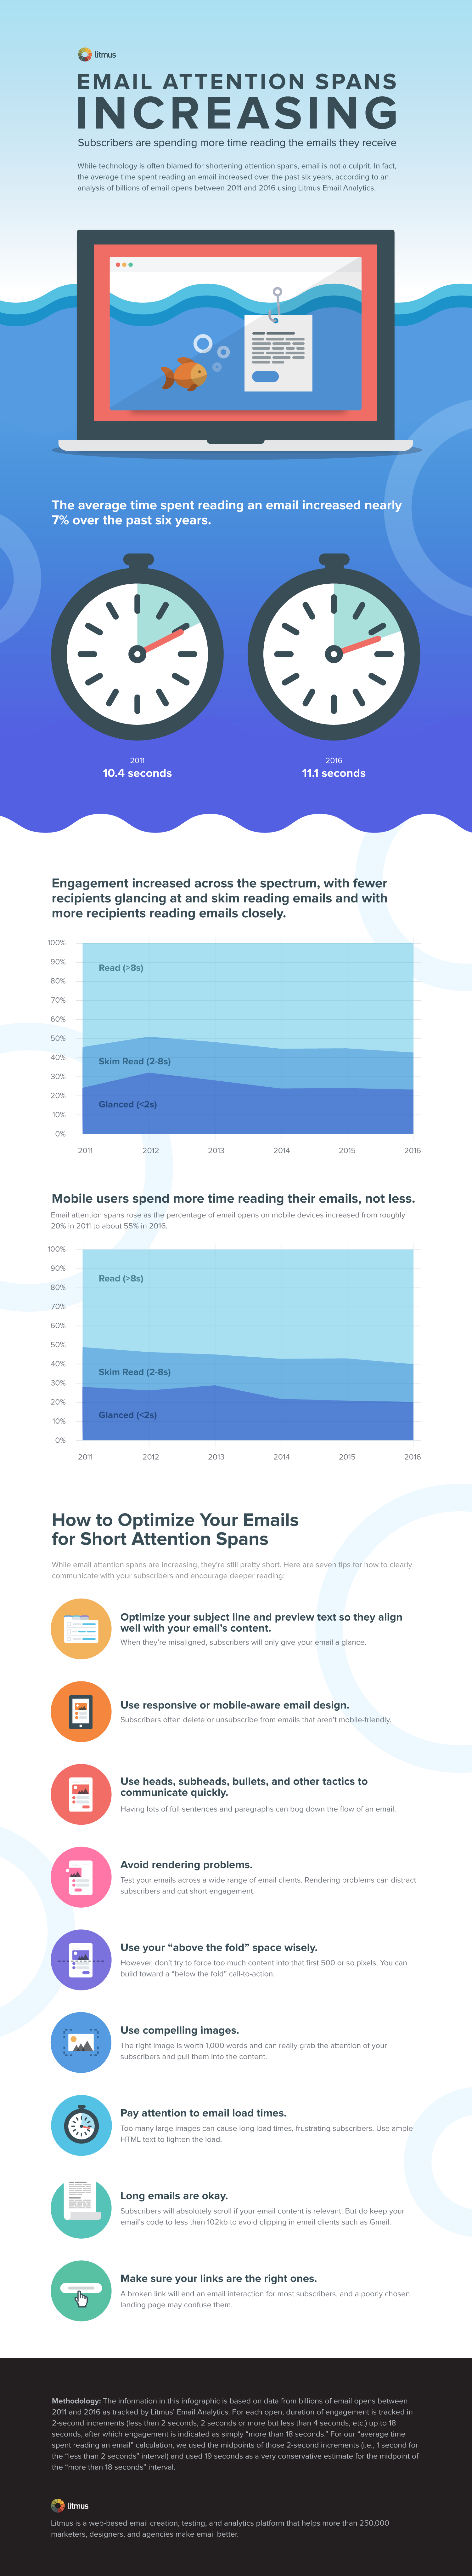 Increasing Attention Spans of Email Subscribers [Infographic]